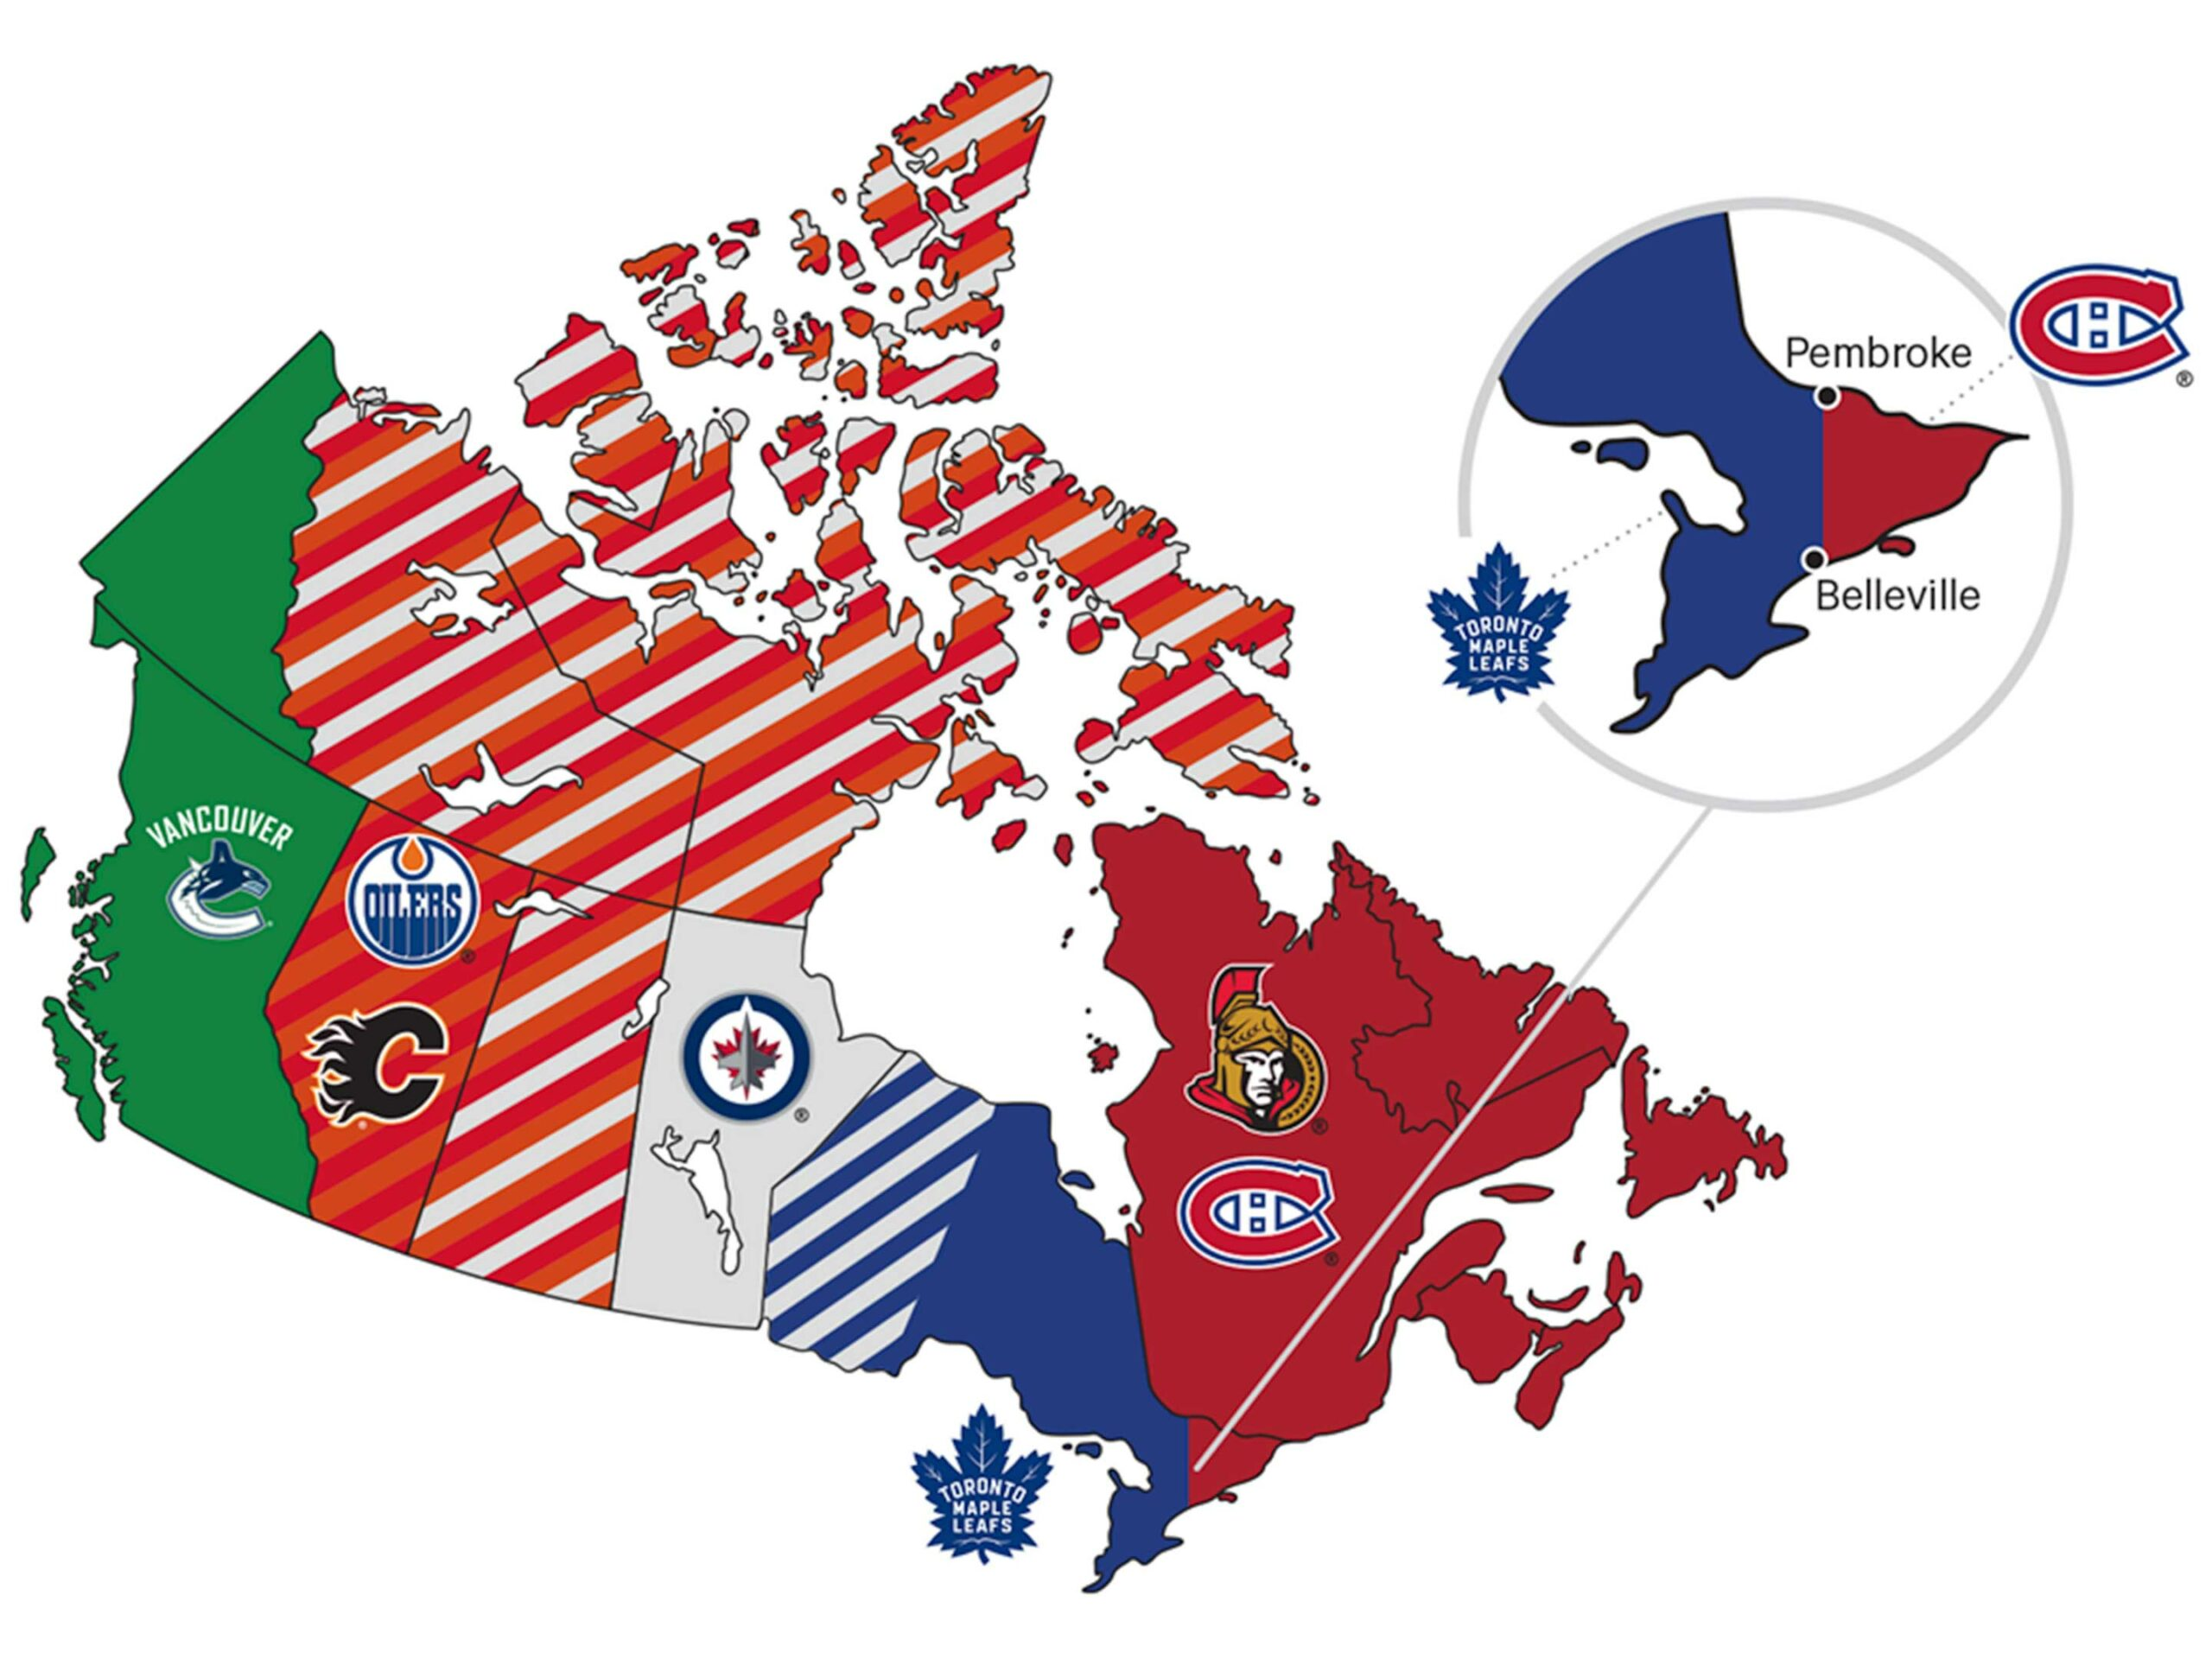 a map of the NHL team regions